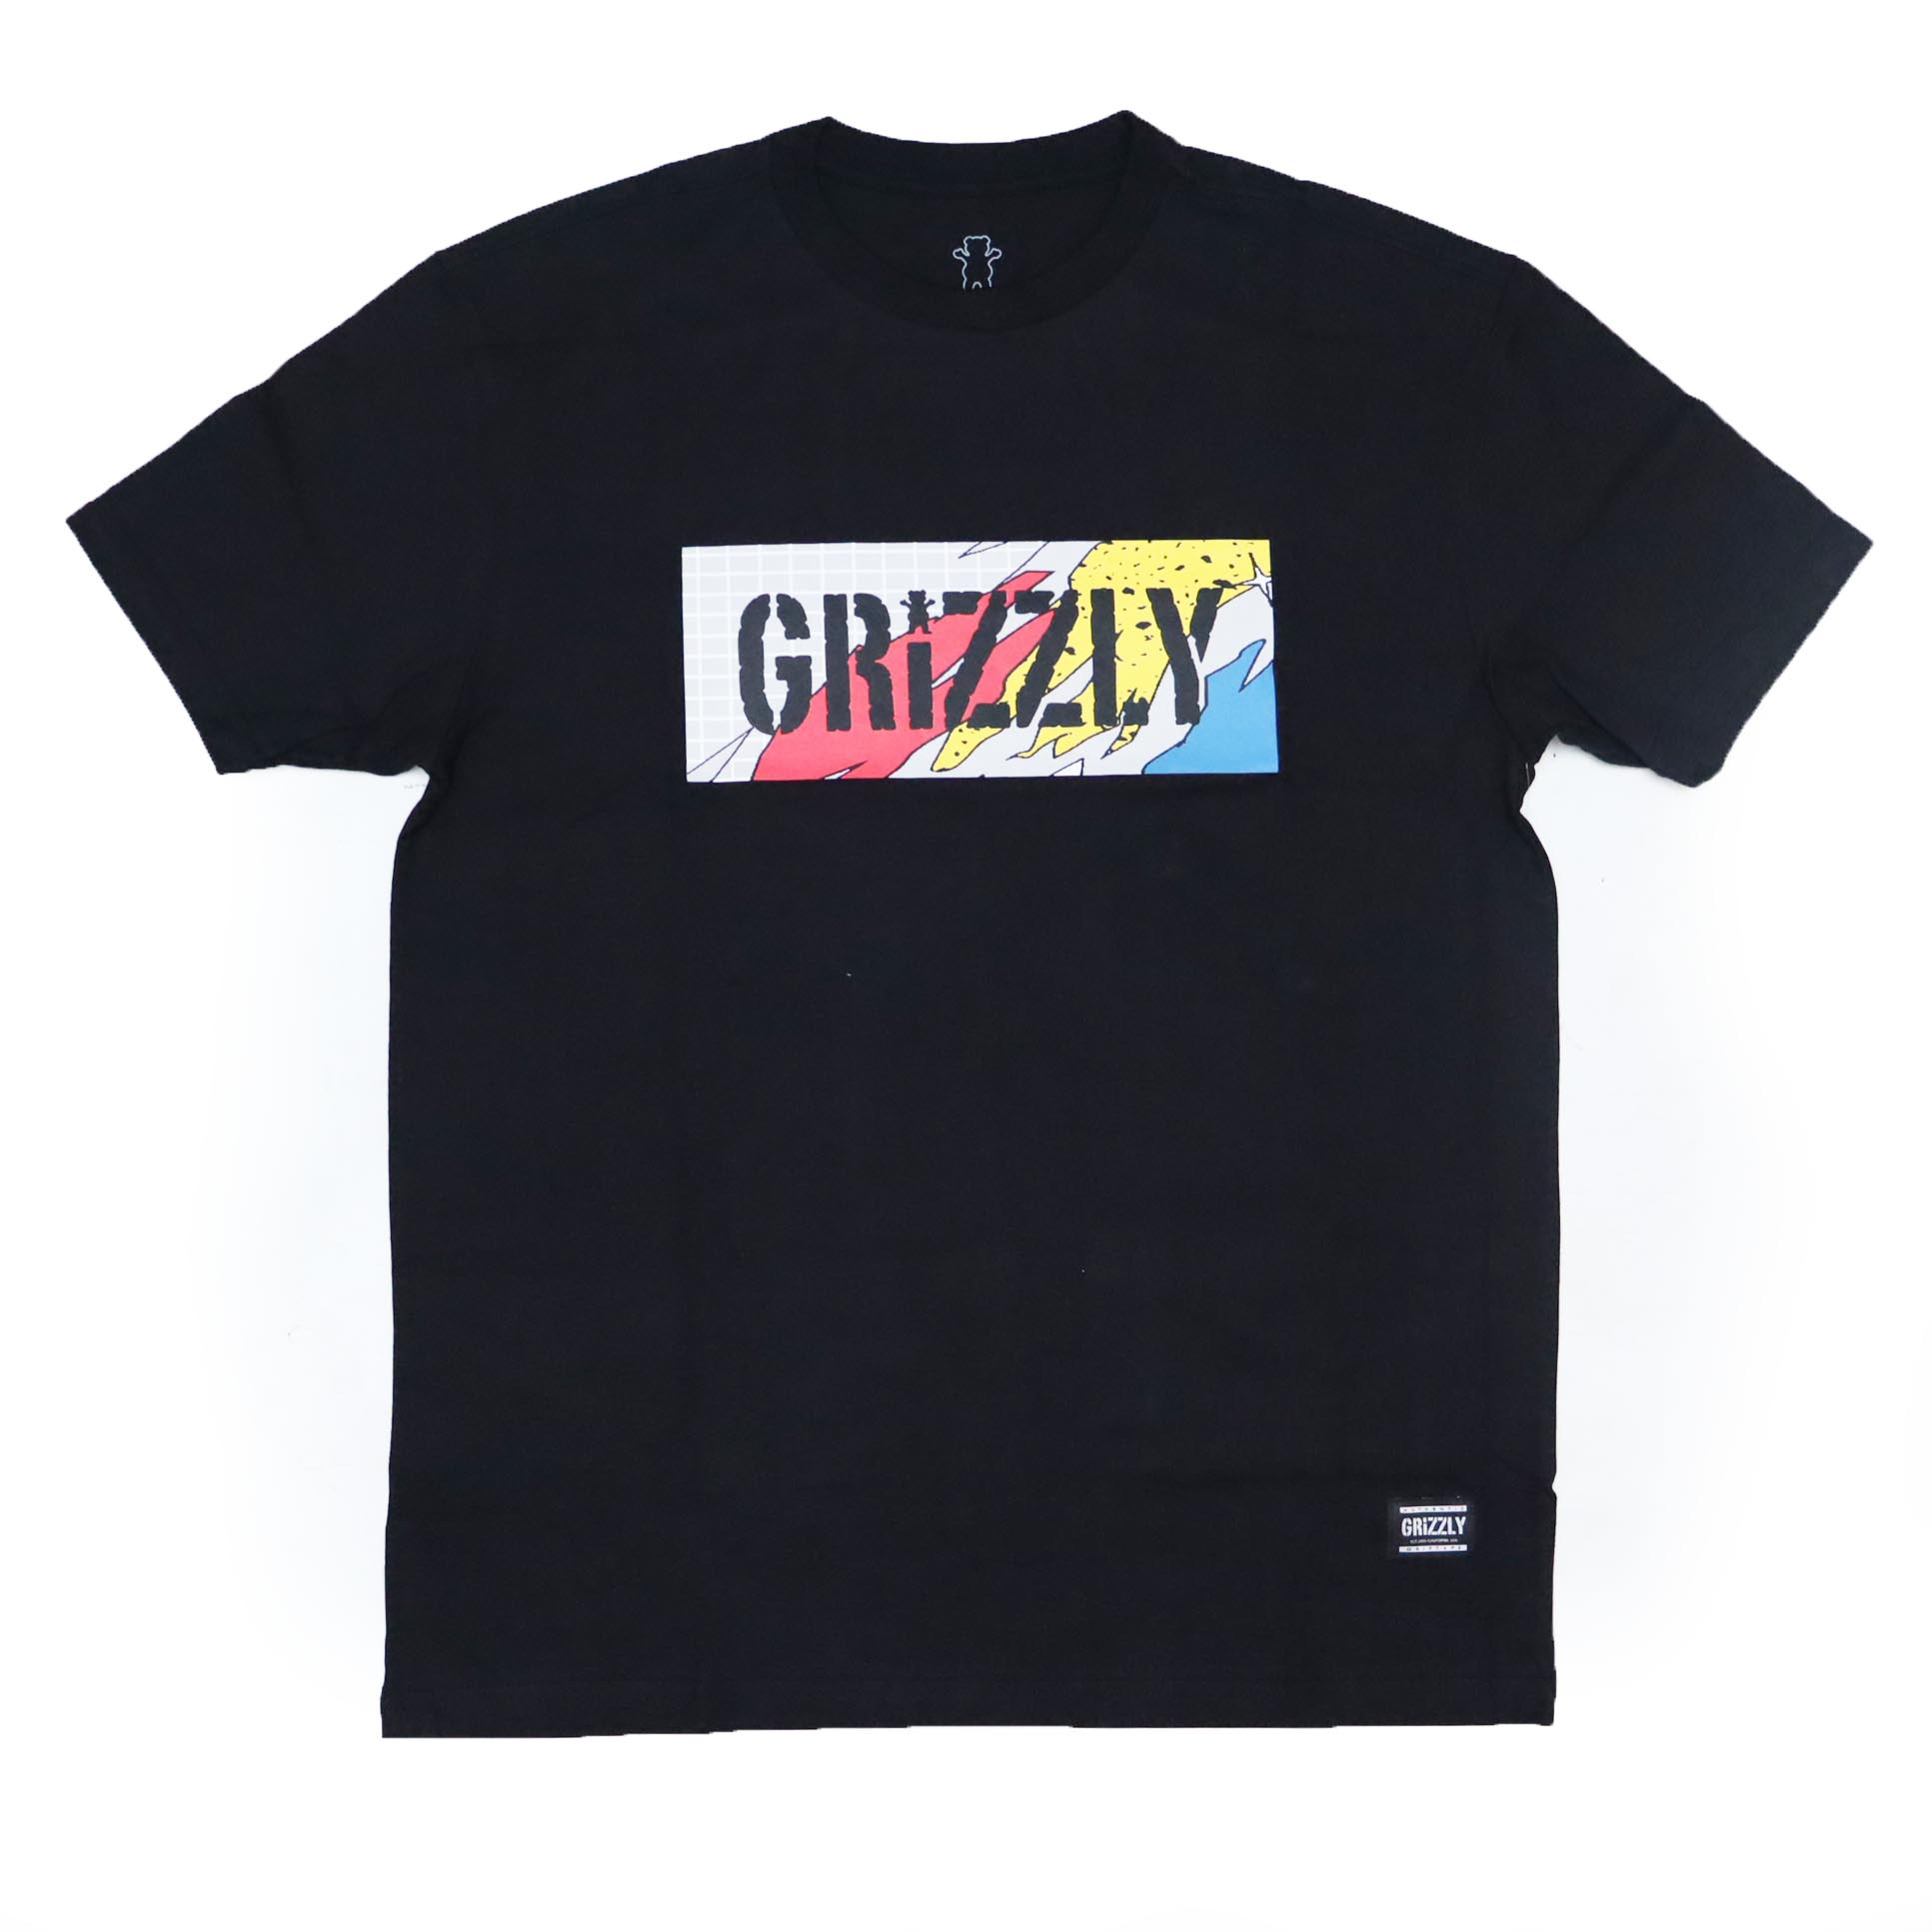 Camiseta Grizzly All That Stamp - Preto